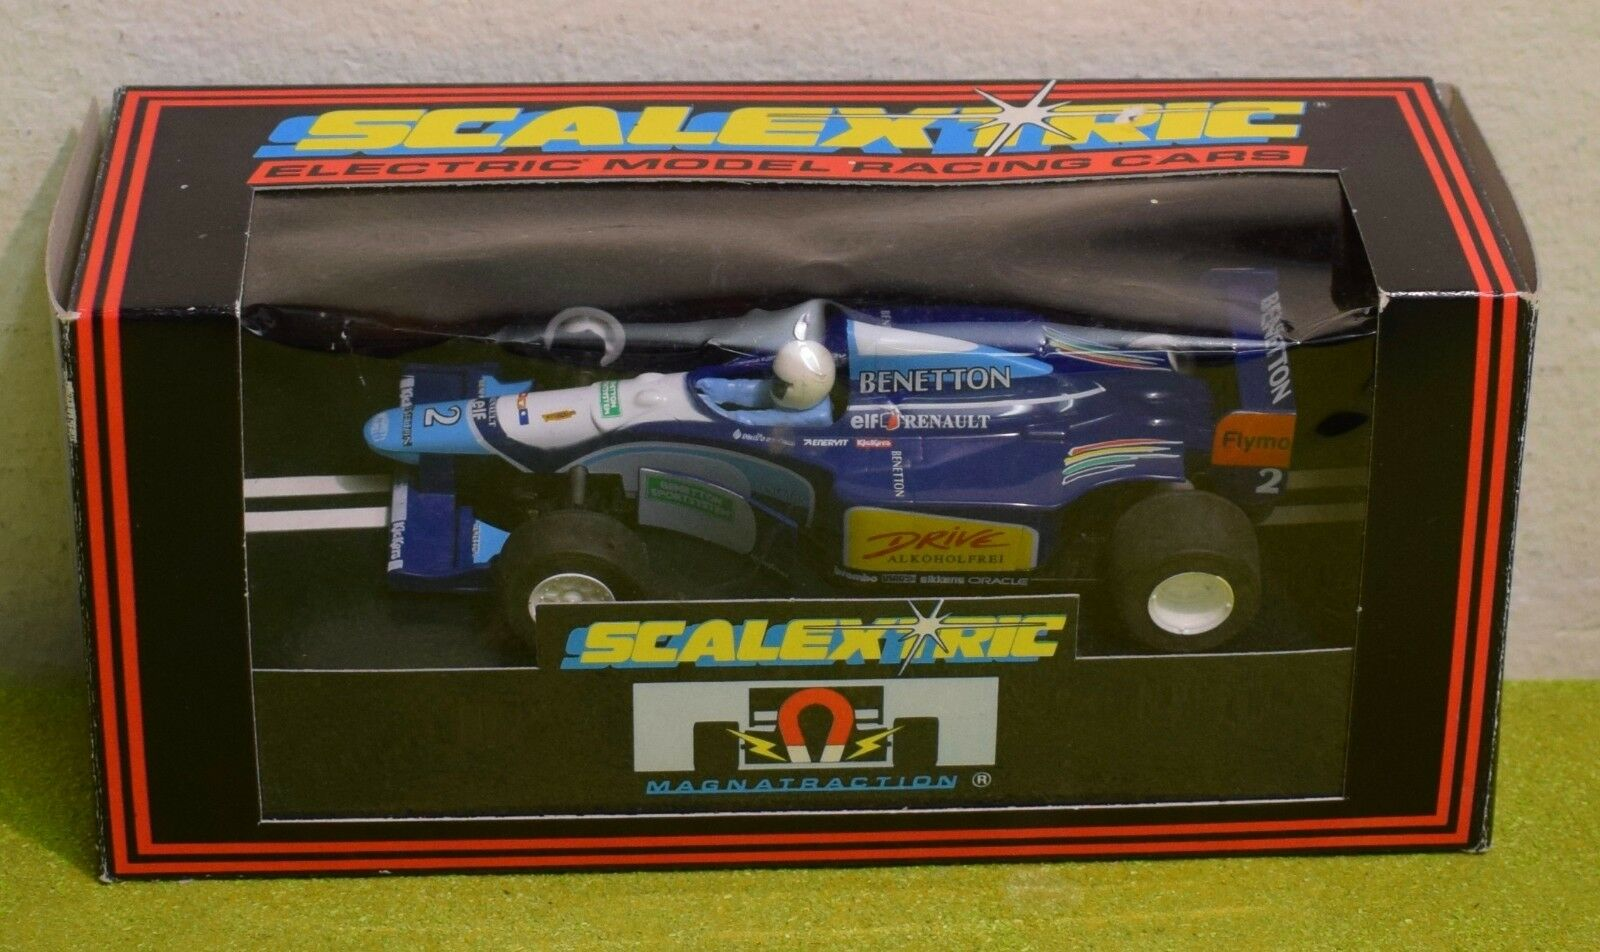 SCALEXTRIC C.237 FORD BENETTON B193 (1994) SLOT CAR